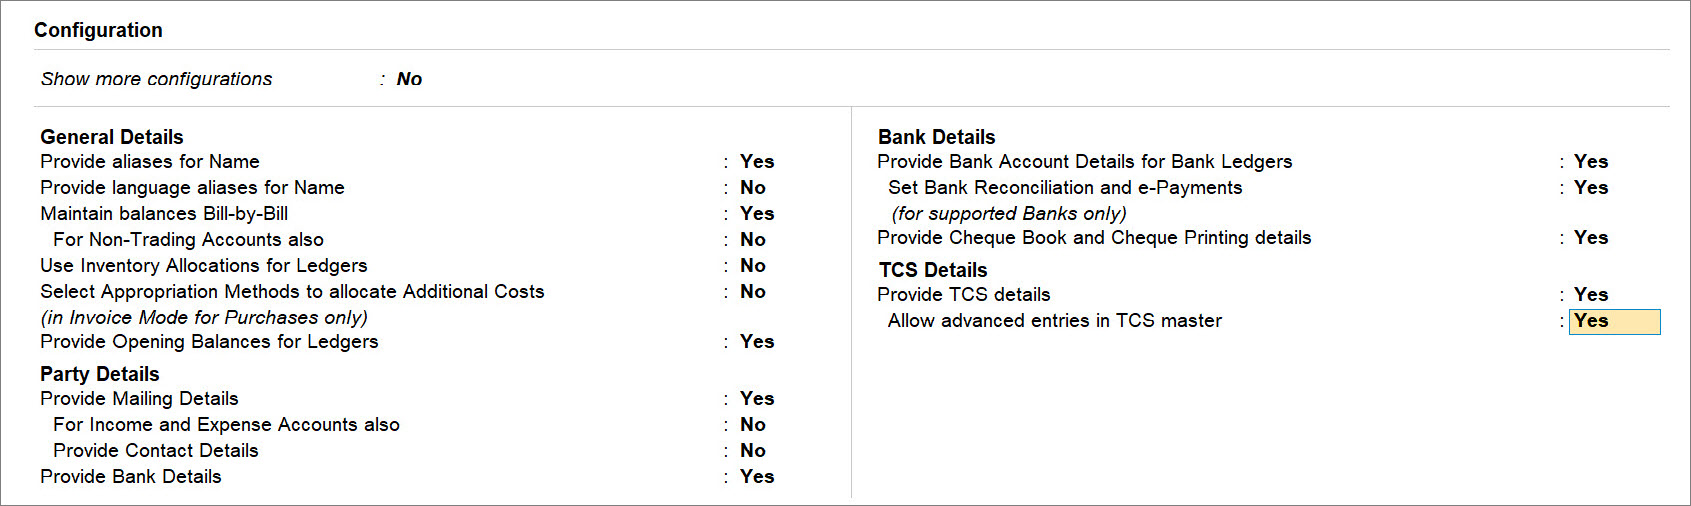 Allow advanced entries in TCS master set to Yes under F12 in Listed Collectee Party Ledger